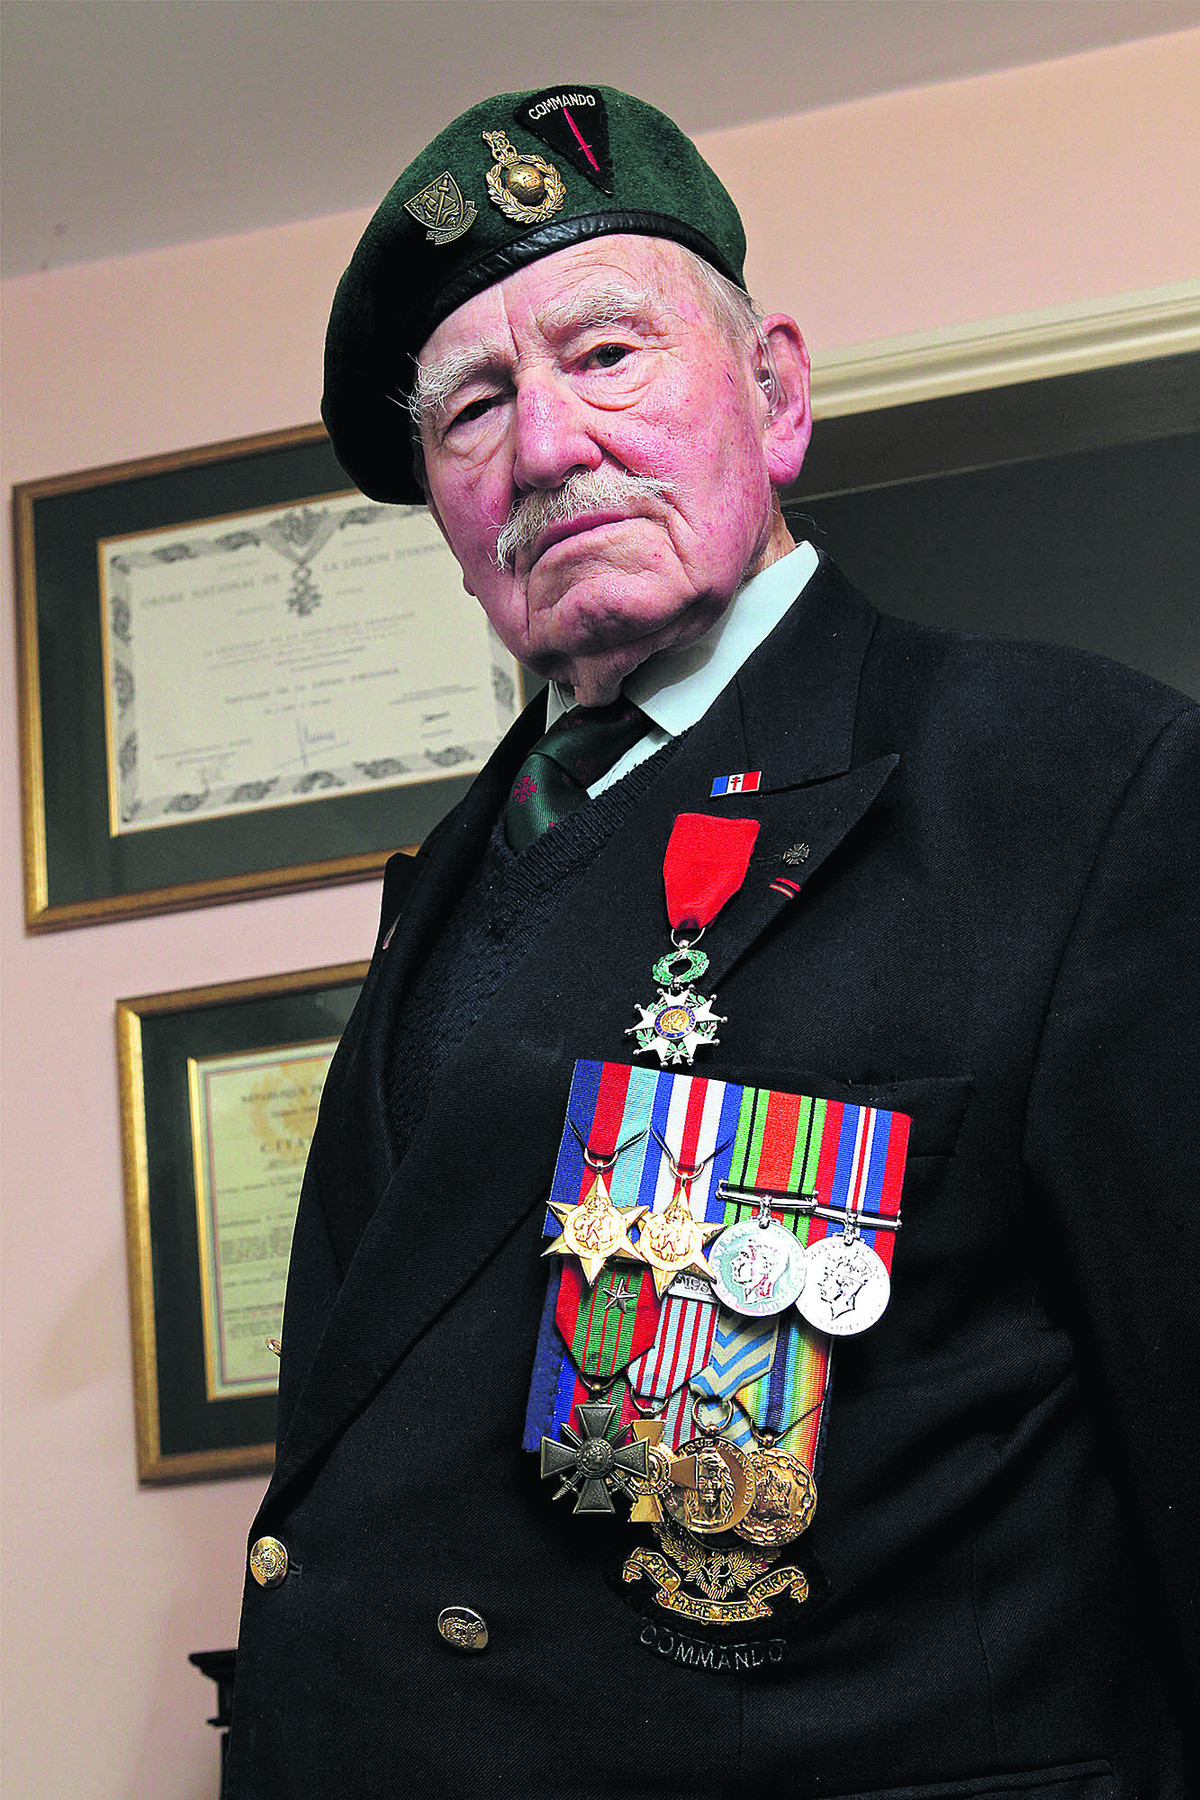 Patrick Churchill took part in the Allied invasion as a Royal Marine Commando.